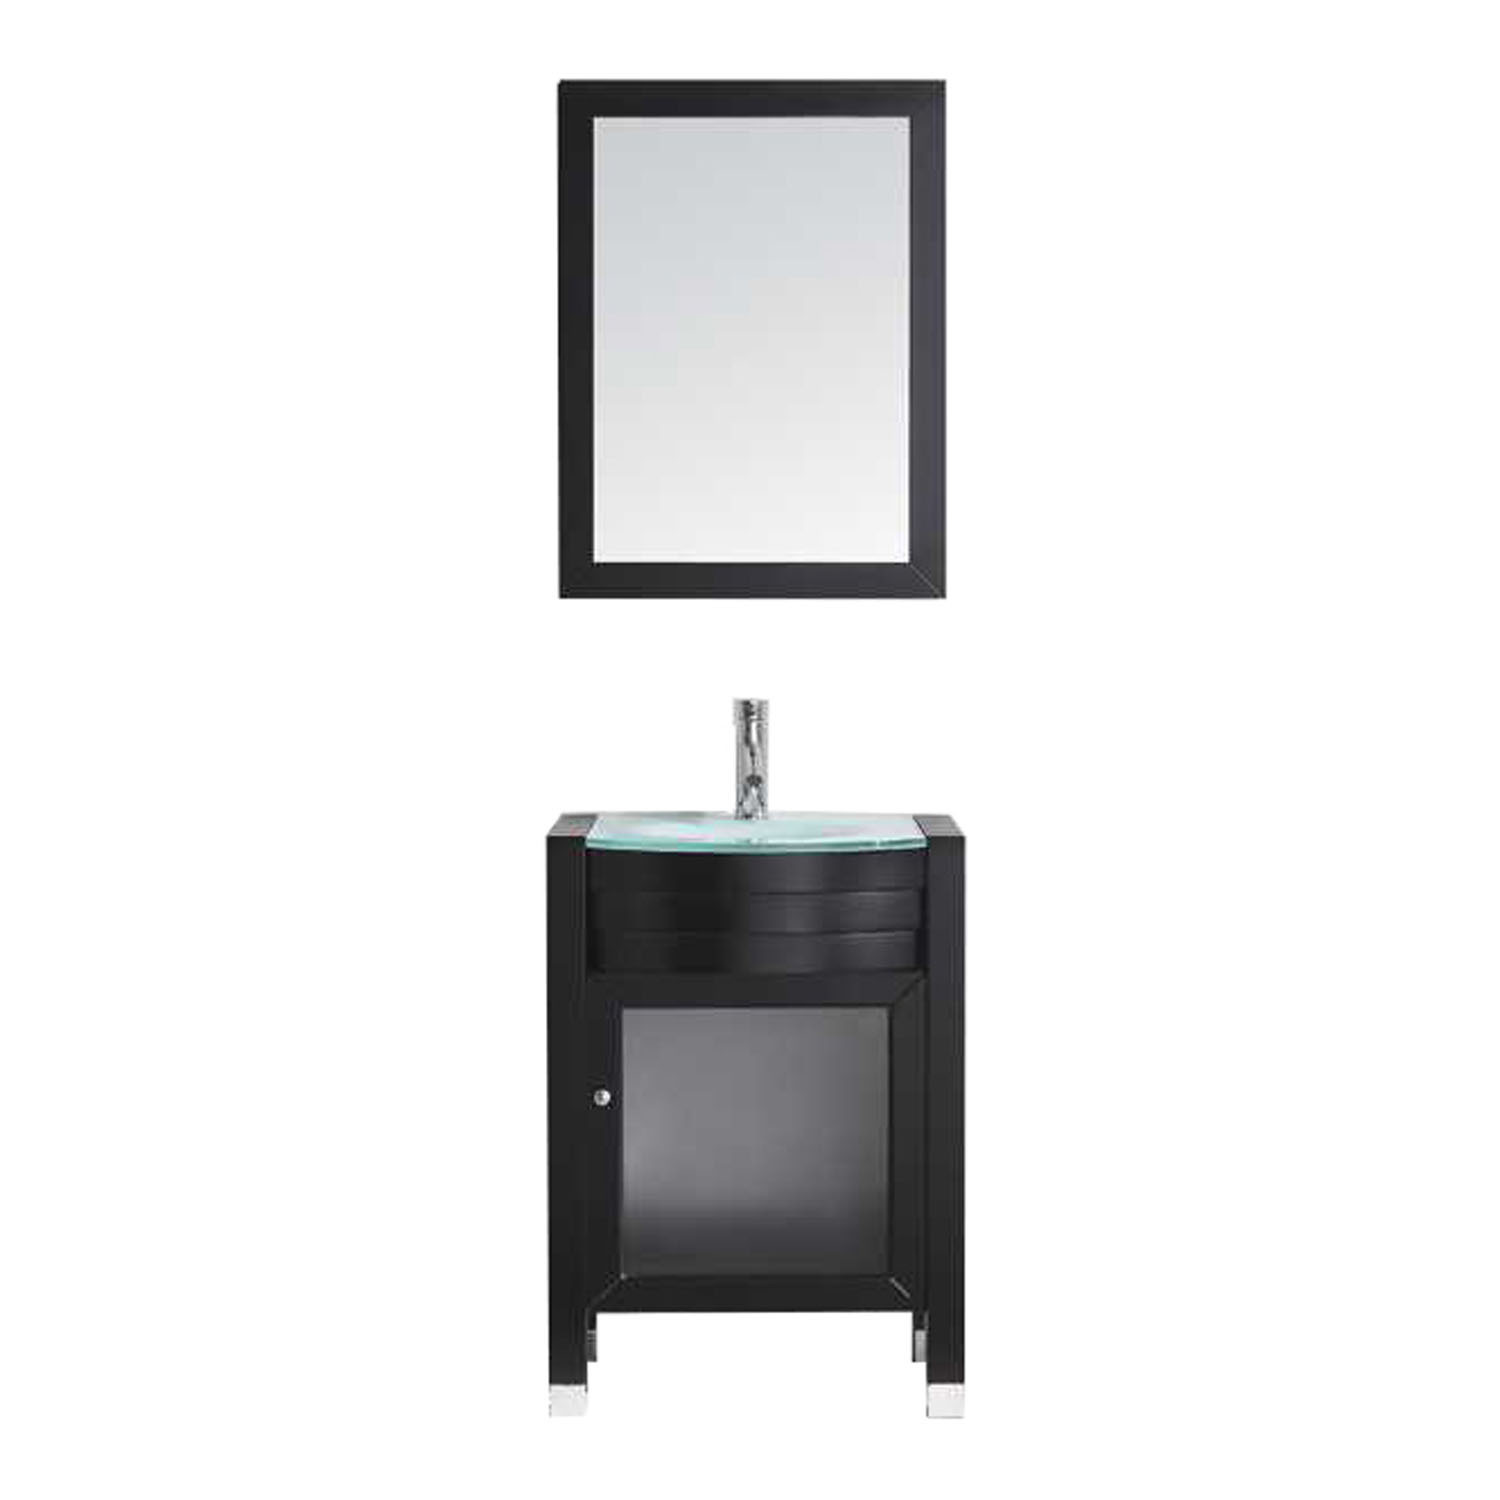 "Virtu MS-545-G-ES-001 24"" Ava Espresso Single Sink Bathroom Vanity"